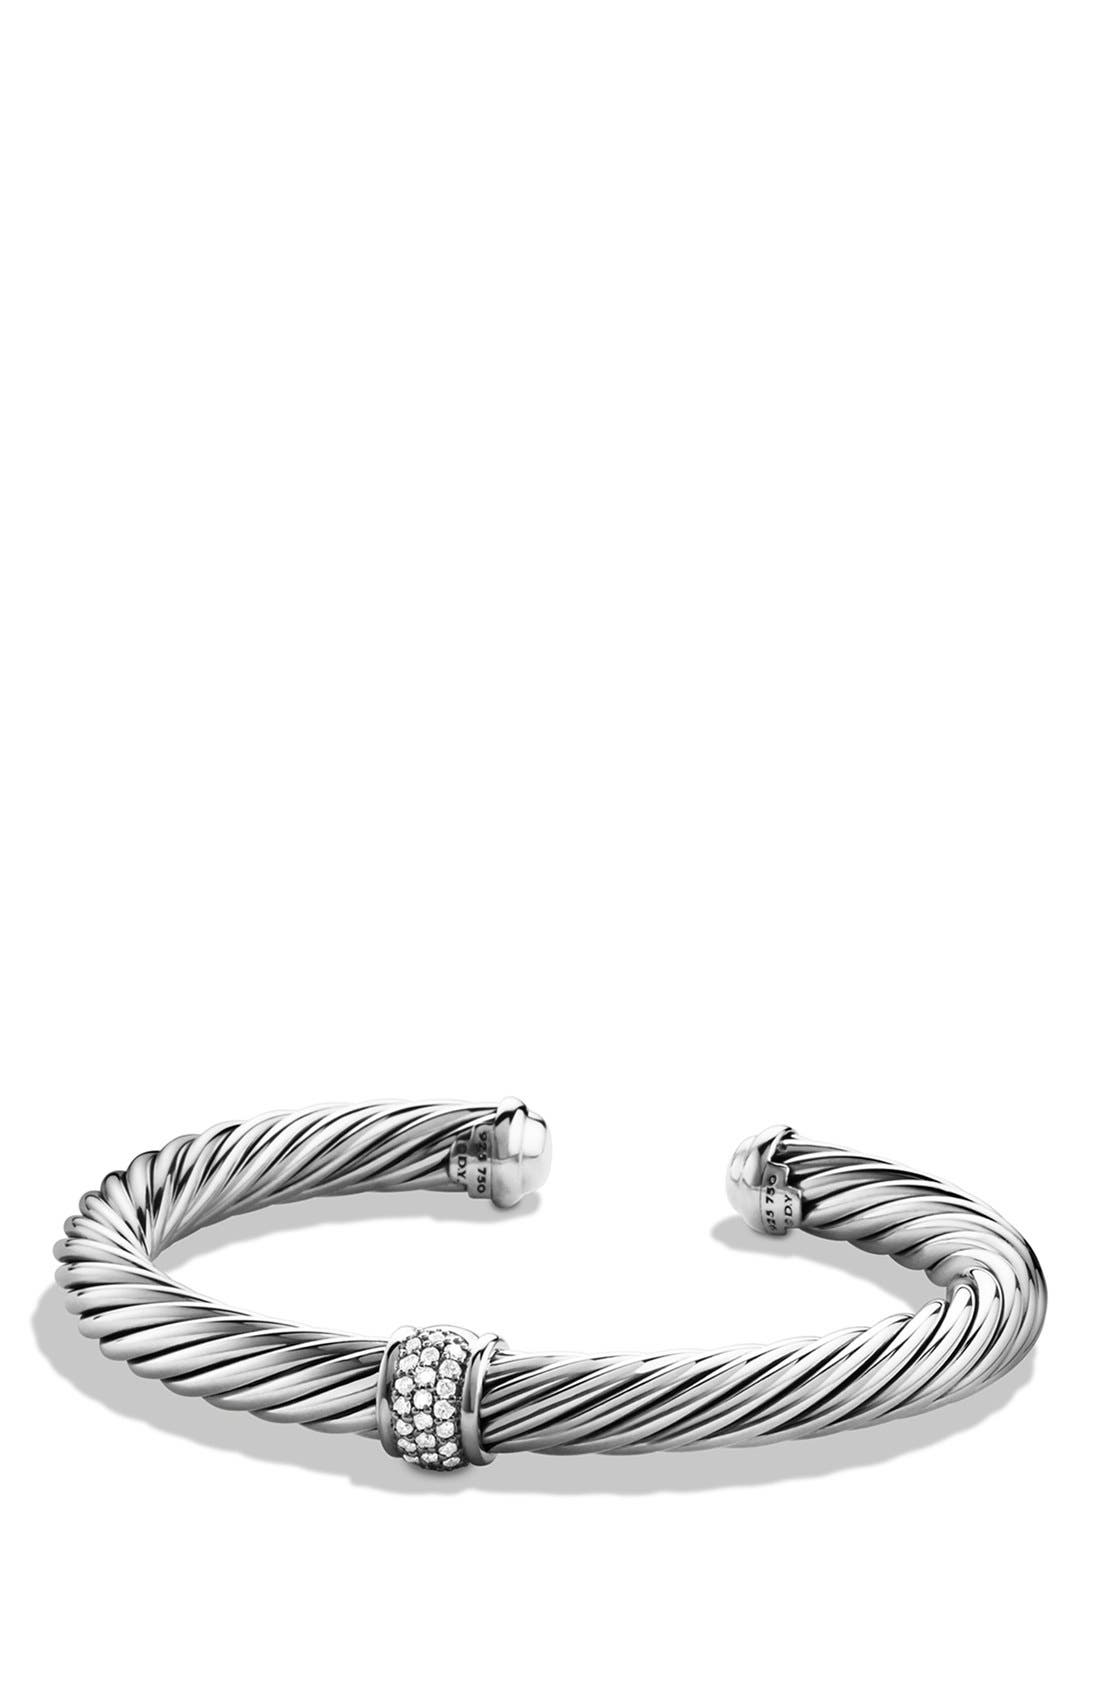 'Cable Classics' Bracelet with Diamonds and White Gold,                             Main thumbnail 1, color,                             DIAMOND